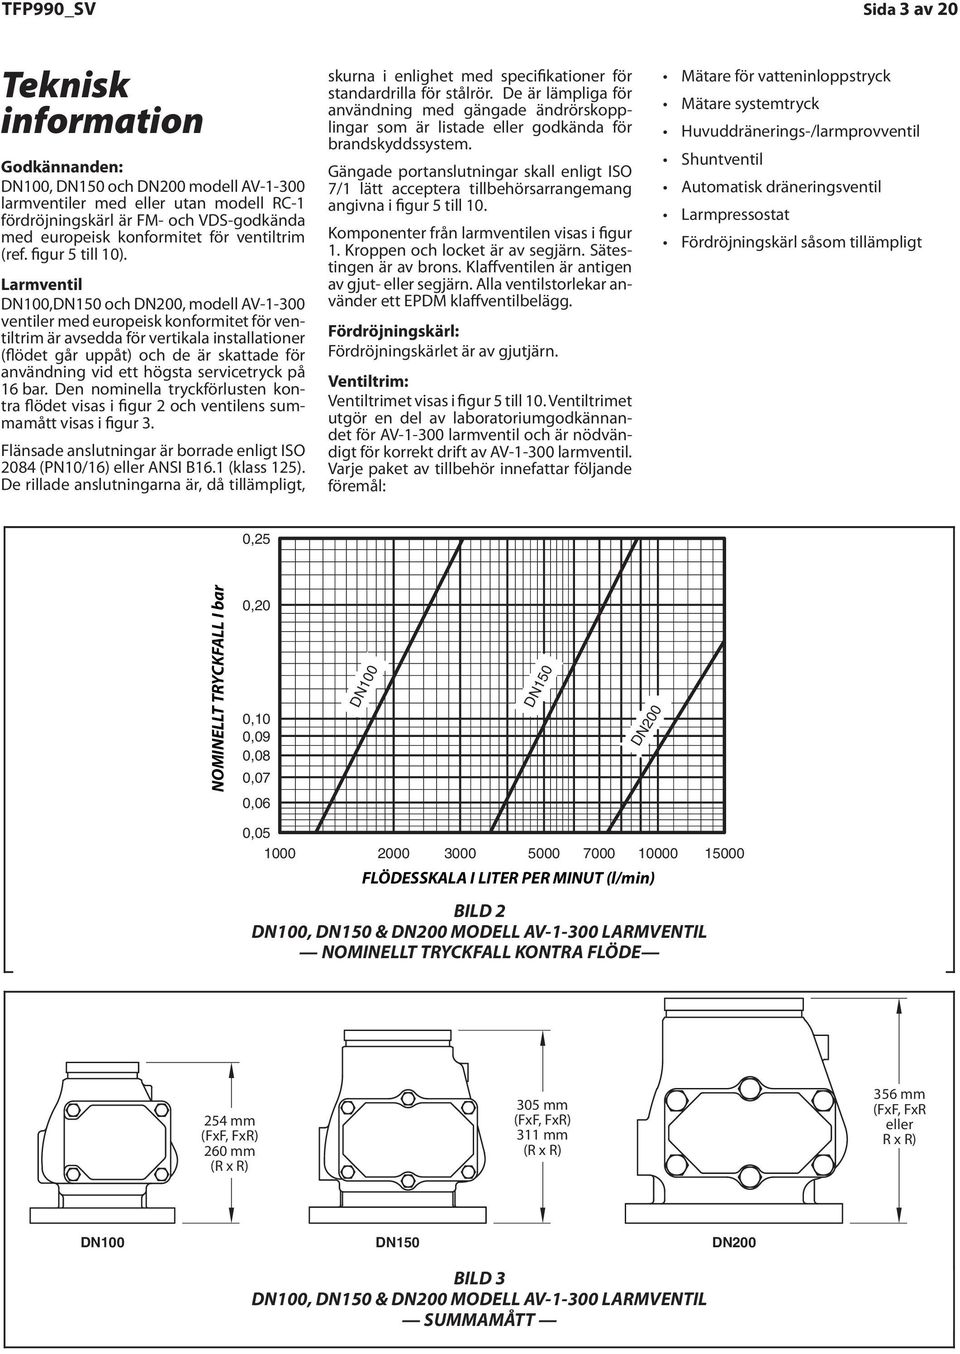 Approved with European Conformity Valve Trim (Ref. Figures thru 0).